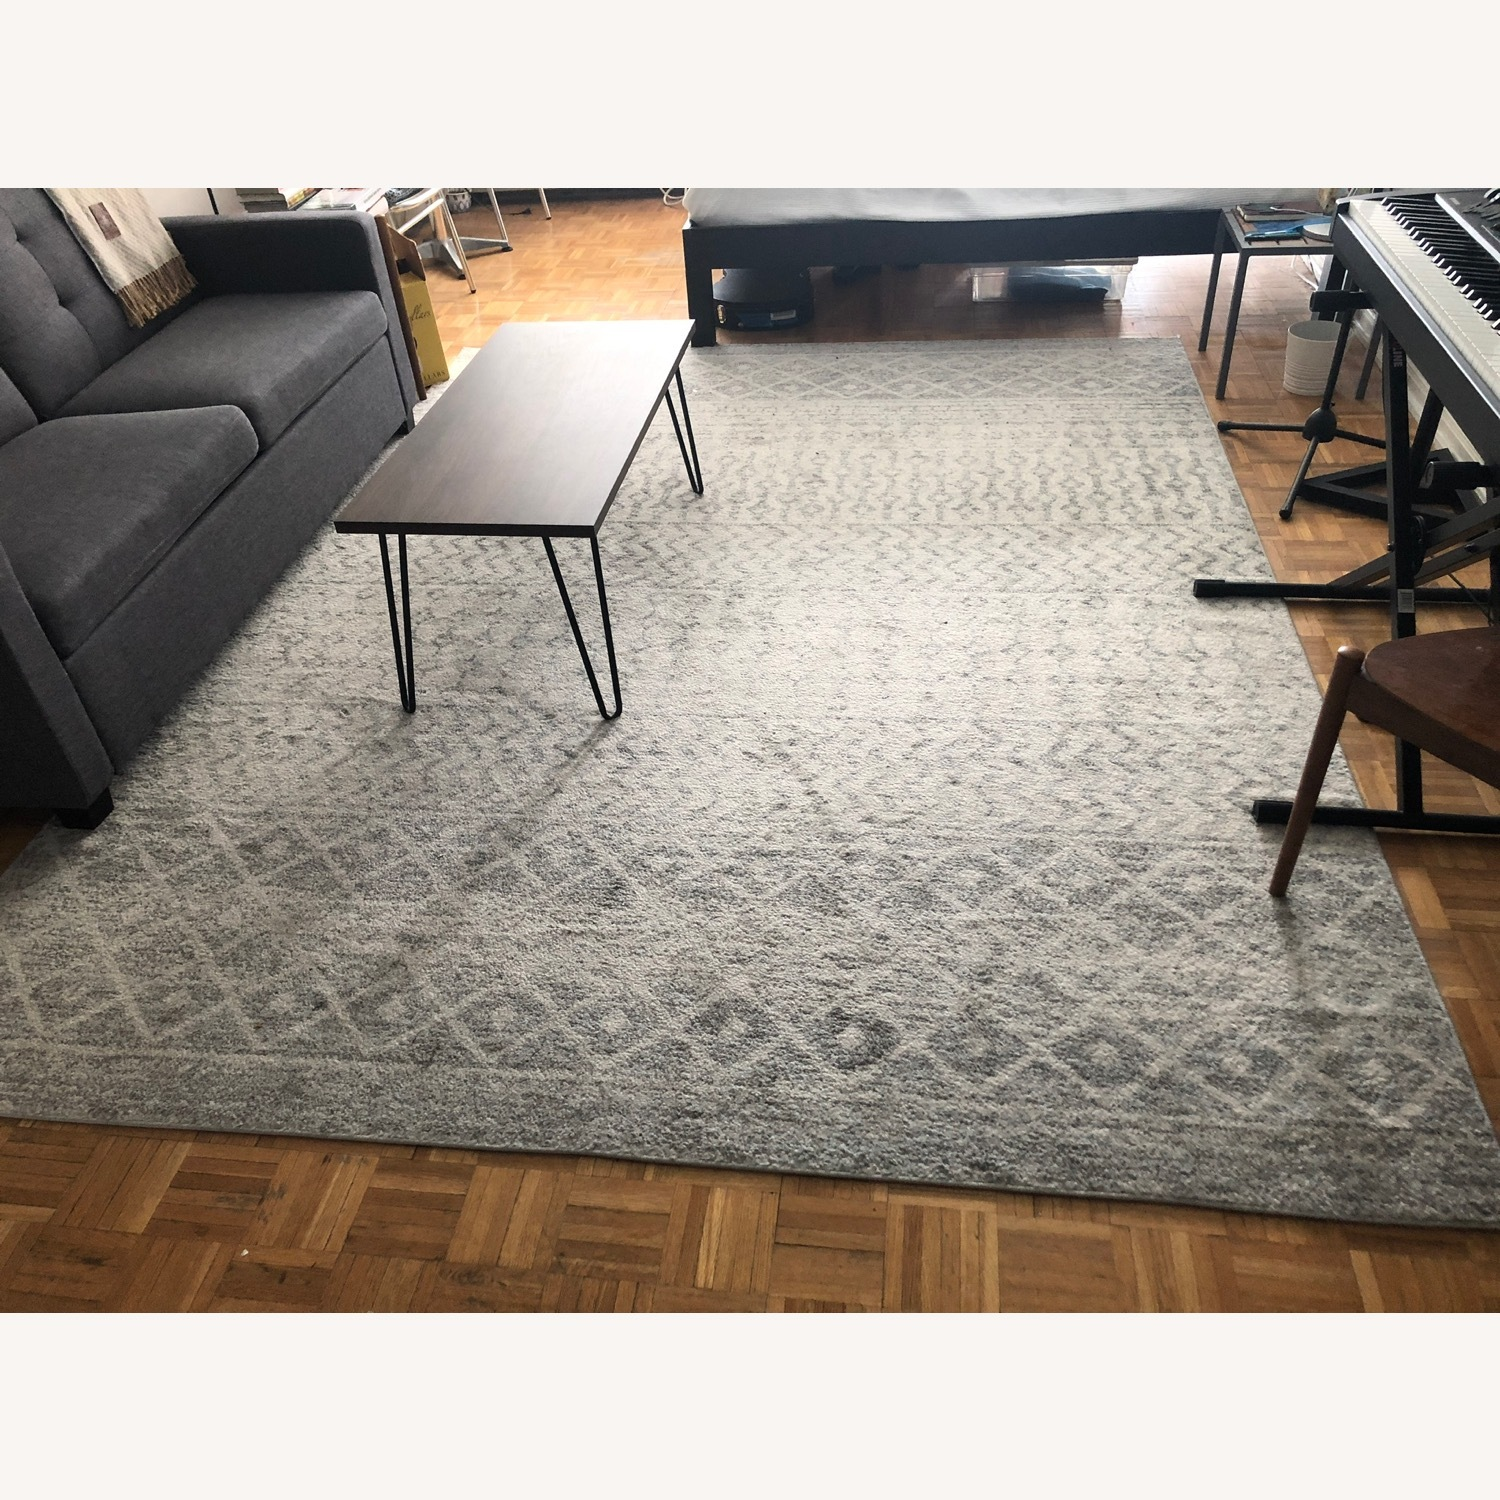 Bohemian Area Rug Antique Silver on White - image-3